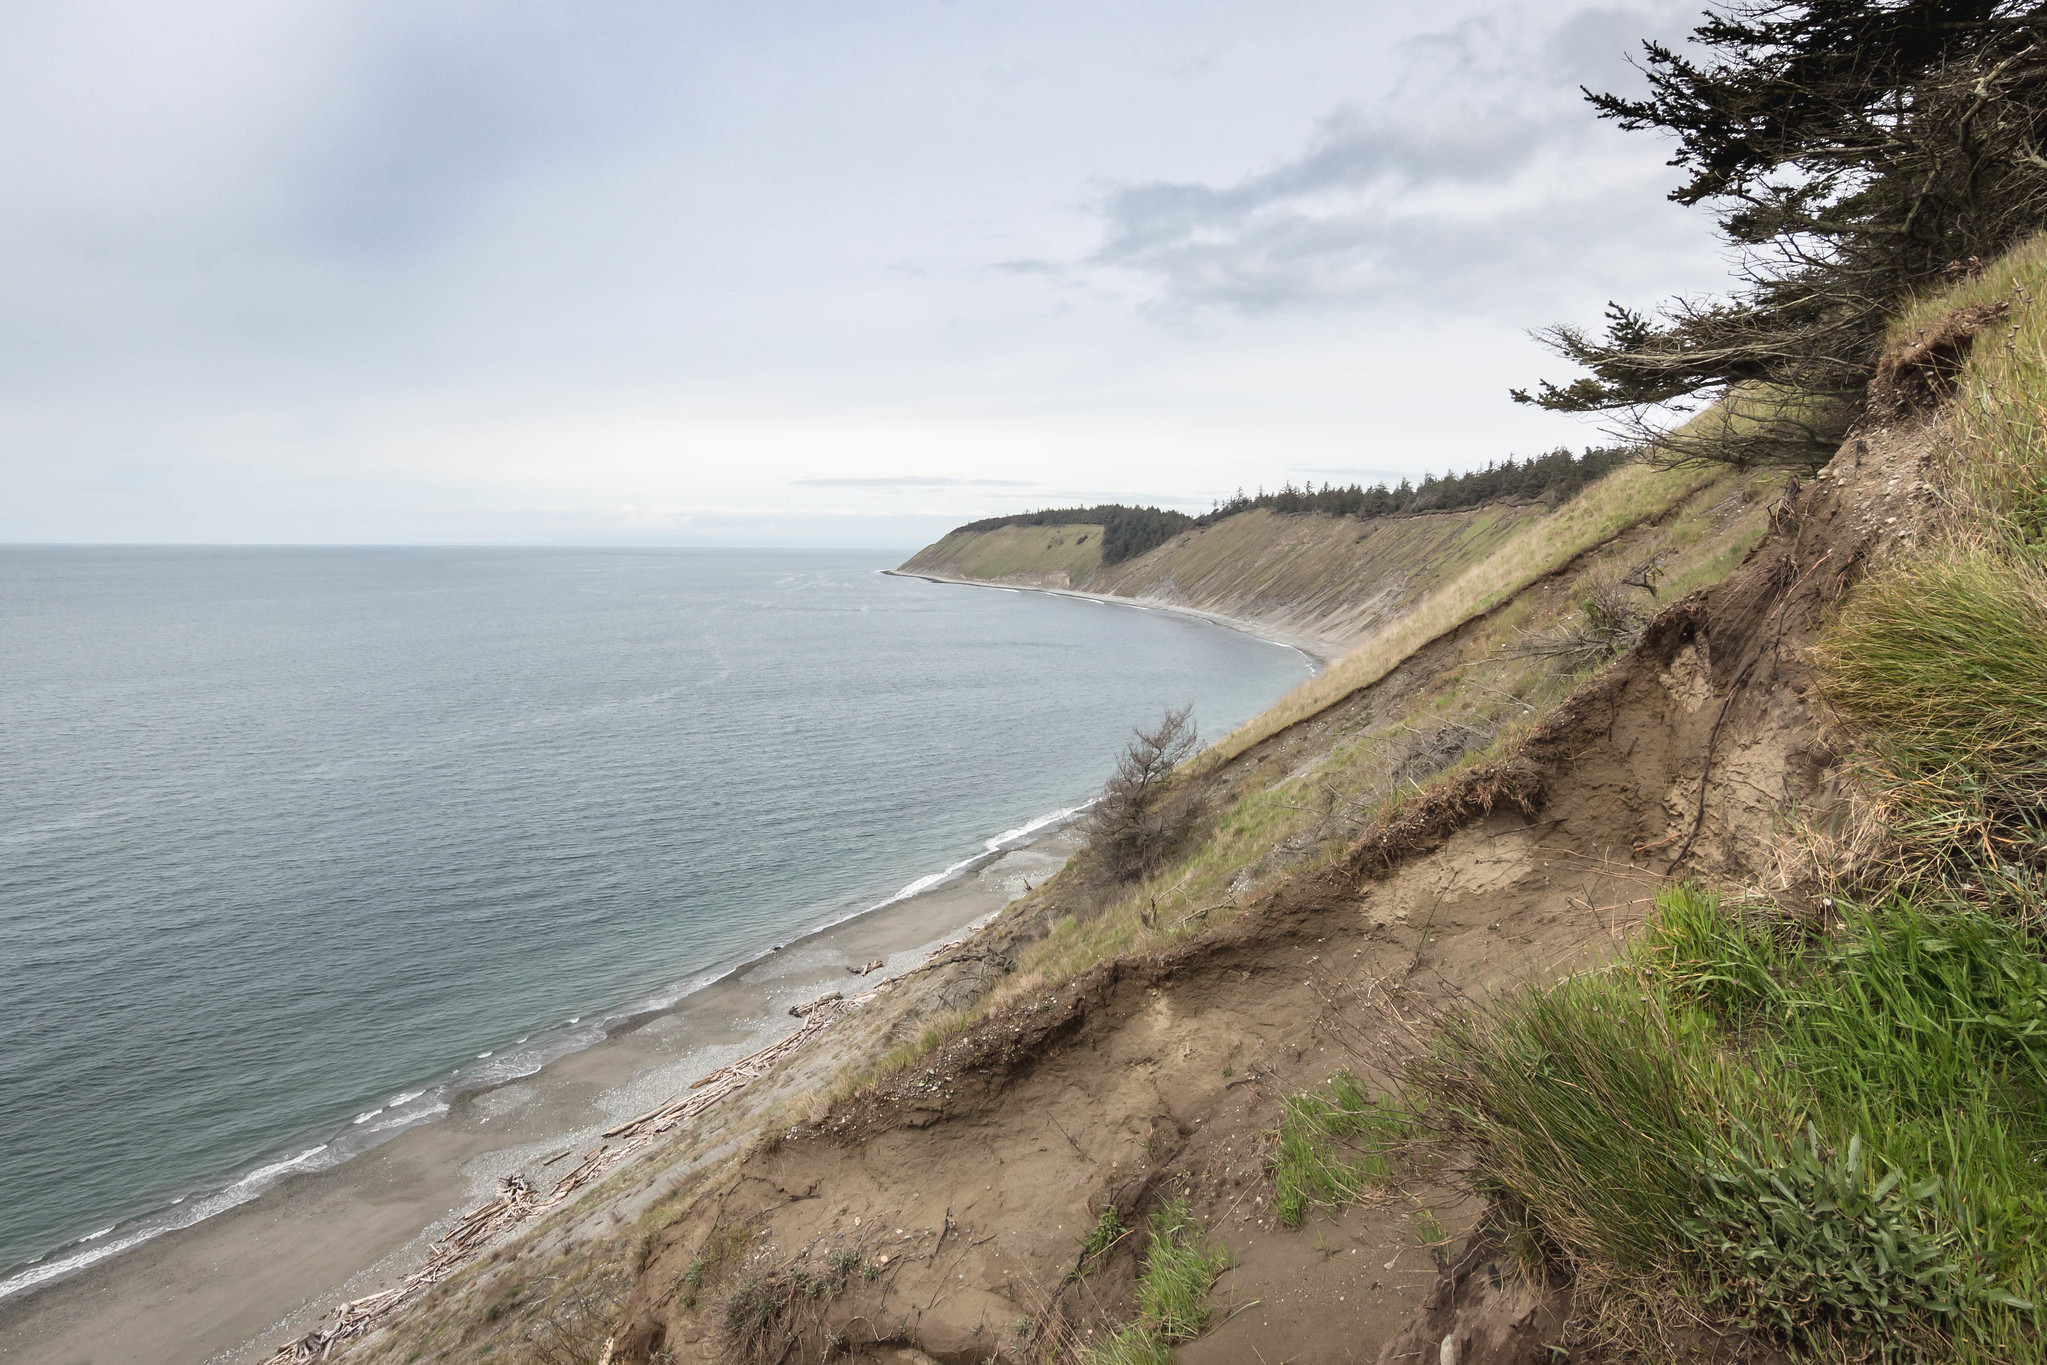 Fort Ebey State Park to the north